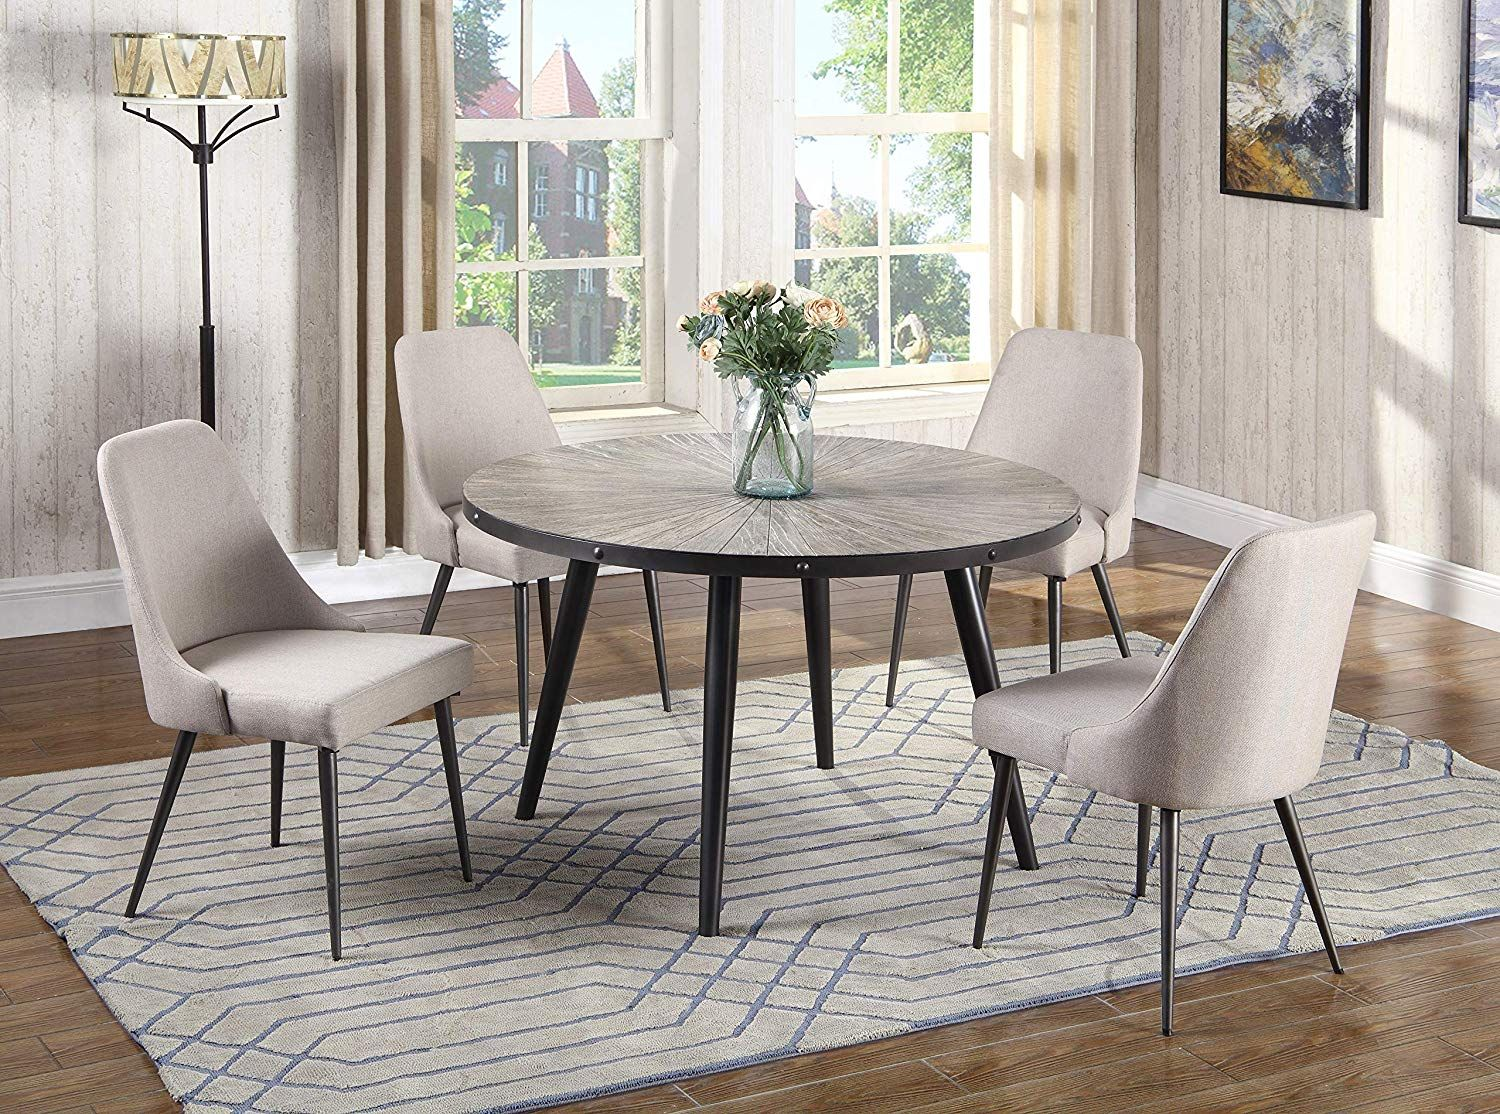 33+ Round dining set for 5 Best Choice